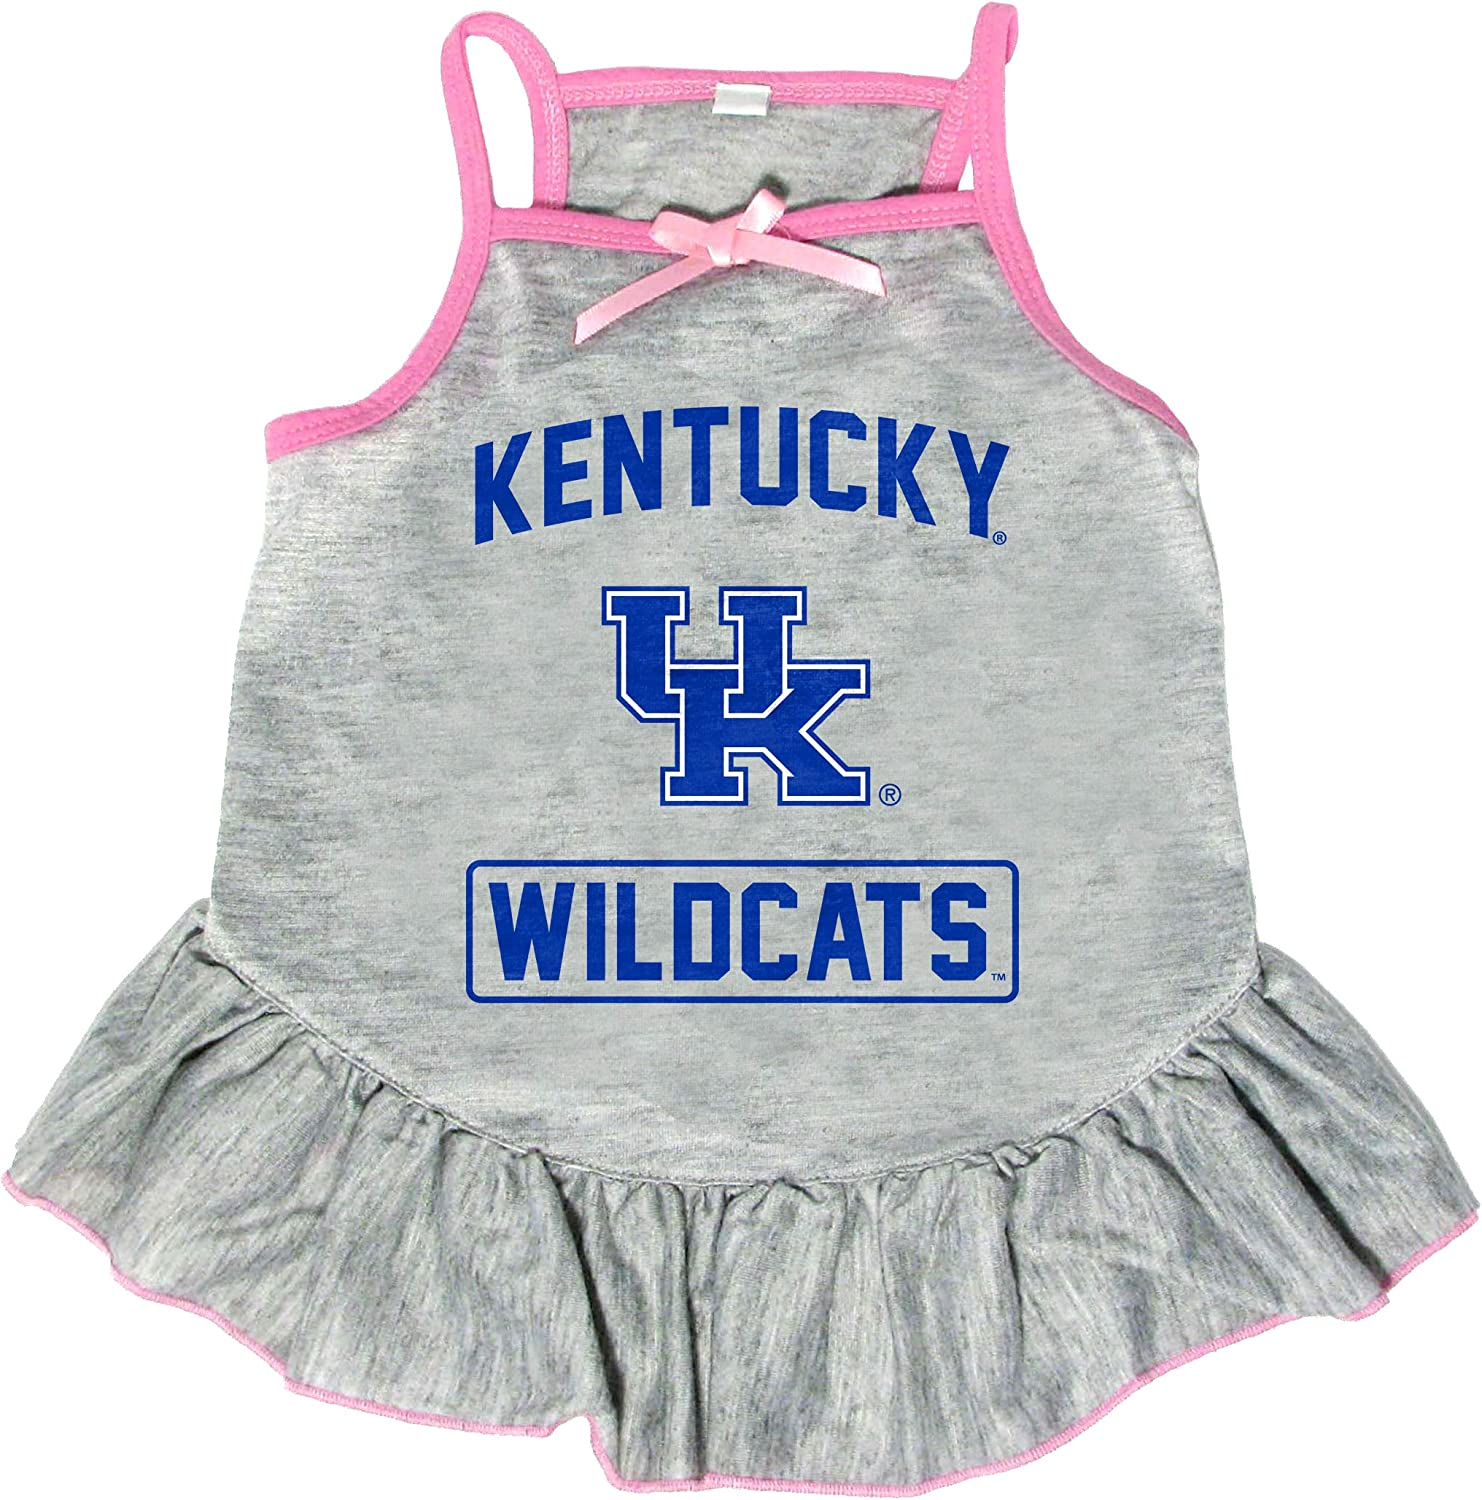 Littlearth Spring new work one Wholesale after another NCAA Kentucky Wildcats Dress Pet Extra Small